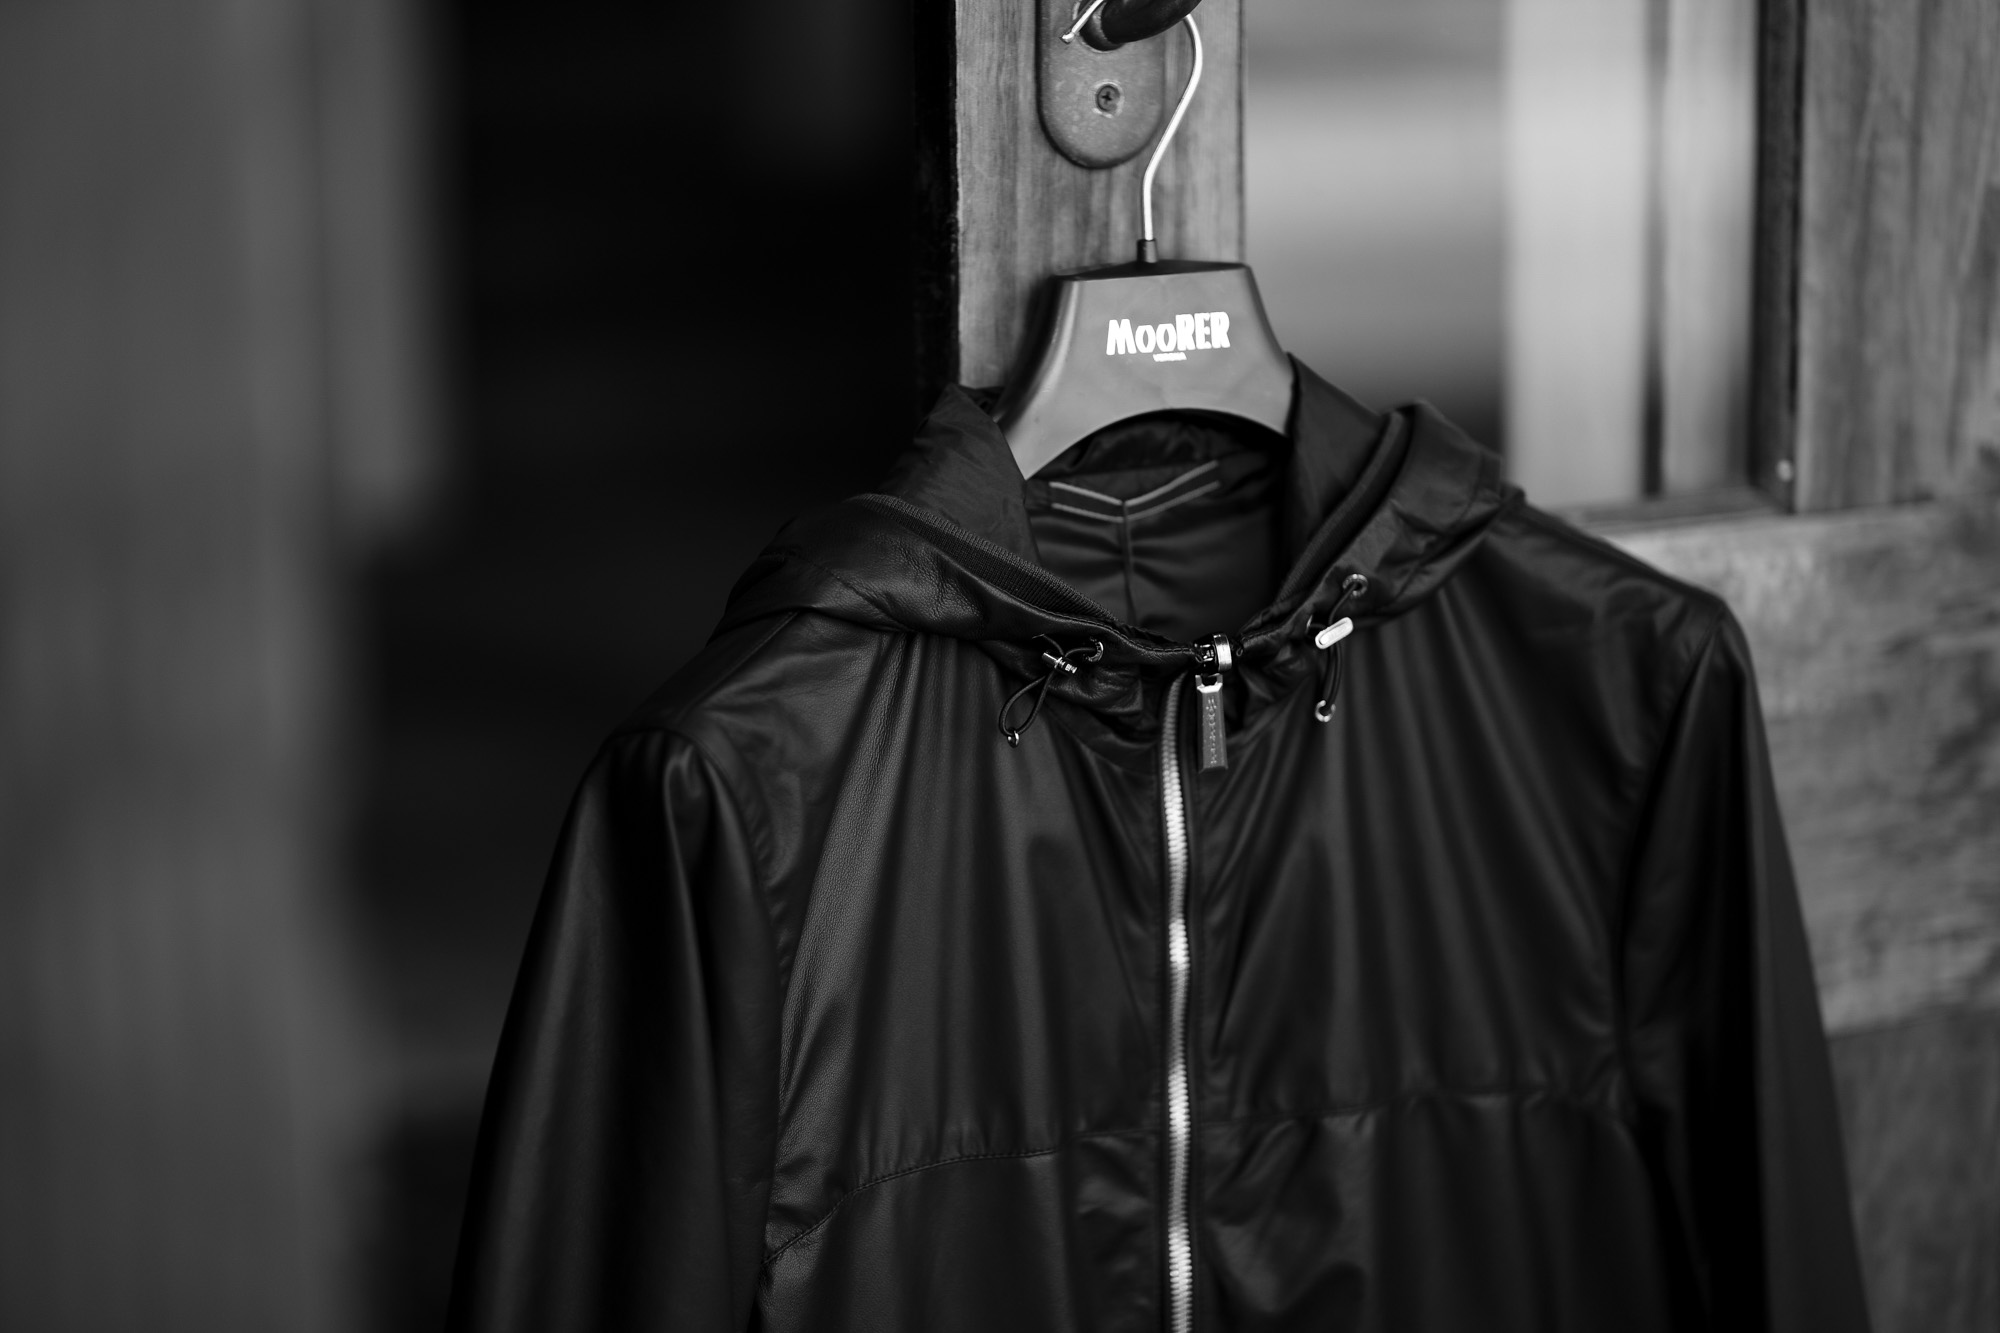 MOORER STILO-LET Hoodie Leather Jacket NERO 2021SS 【Special Model】 ムーレー レザーブルゾン 愛知 名古屋 Alto e Diritto altoediritto アルトエデリット レザージャケット フードレザー